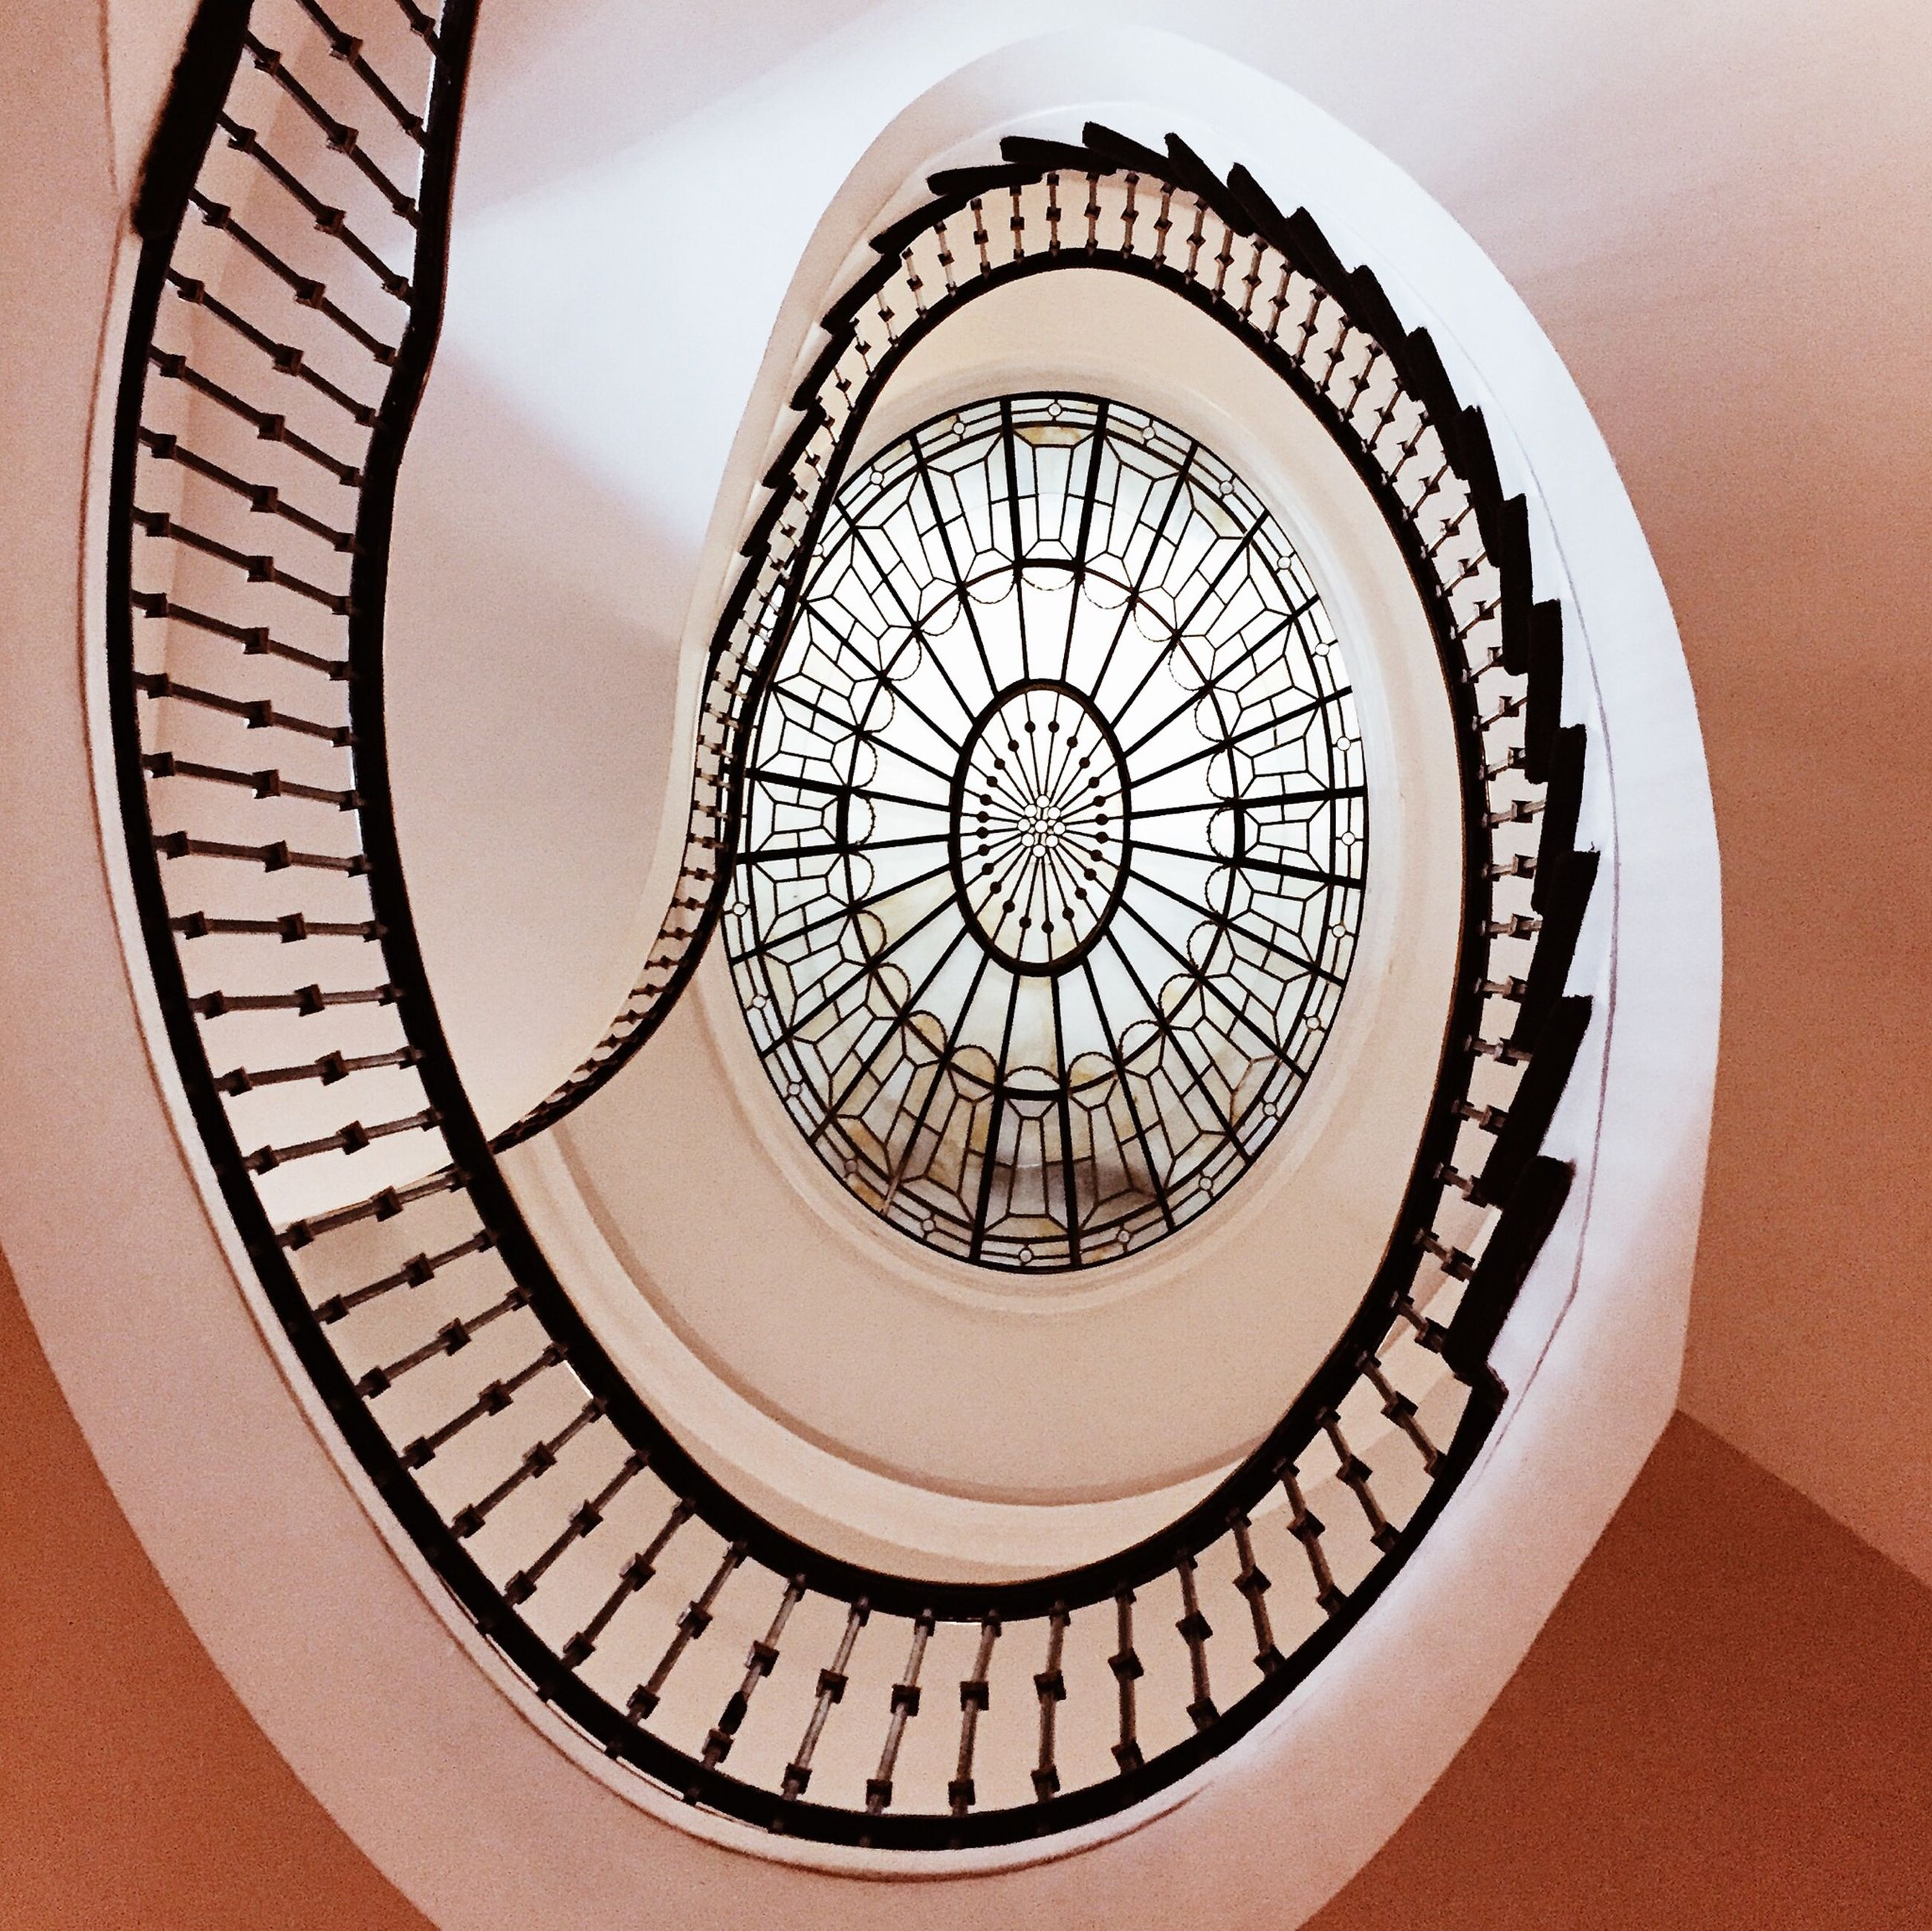 indoors, architecture, built structure, low angle view, directly below, staircase, spiral staircase, steps and staircases, spiral, railing, ceiling, steps, pattern, design, geometric shape, circle, skylight, architectural feature, building, modern